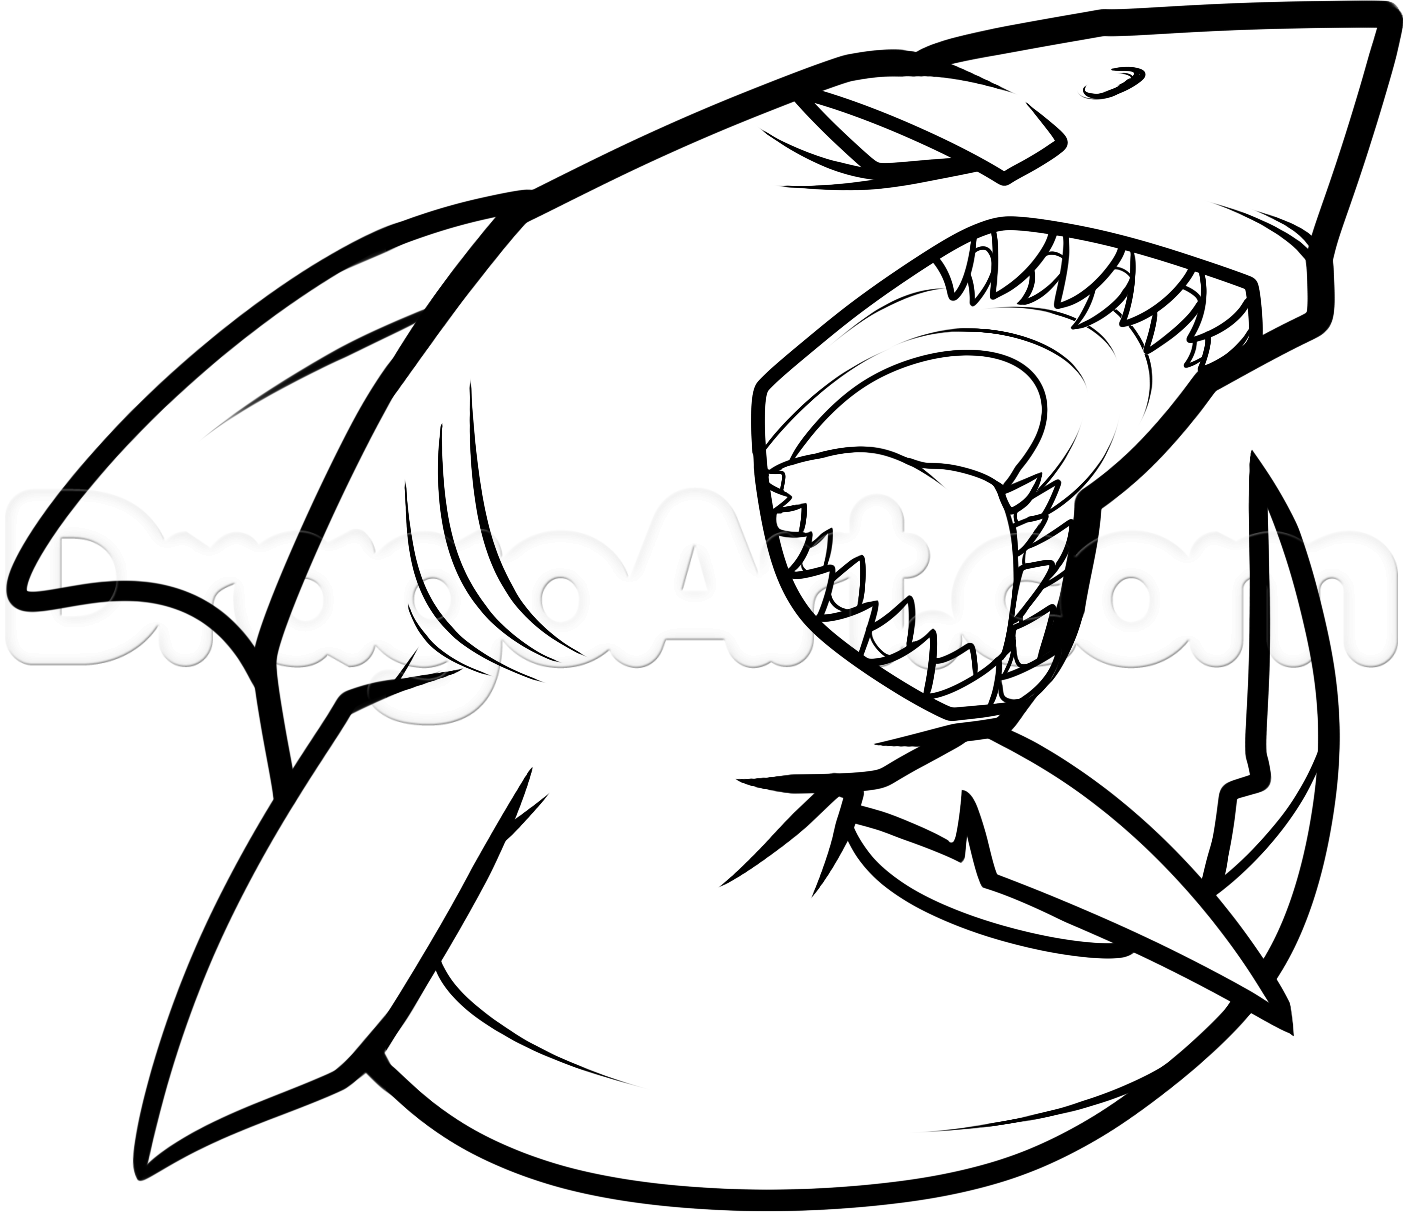 How to draw a cool shark step 7